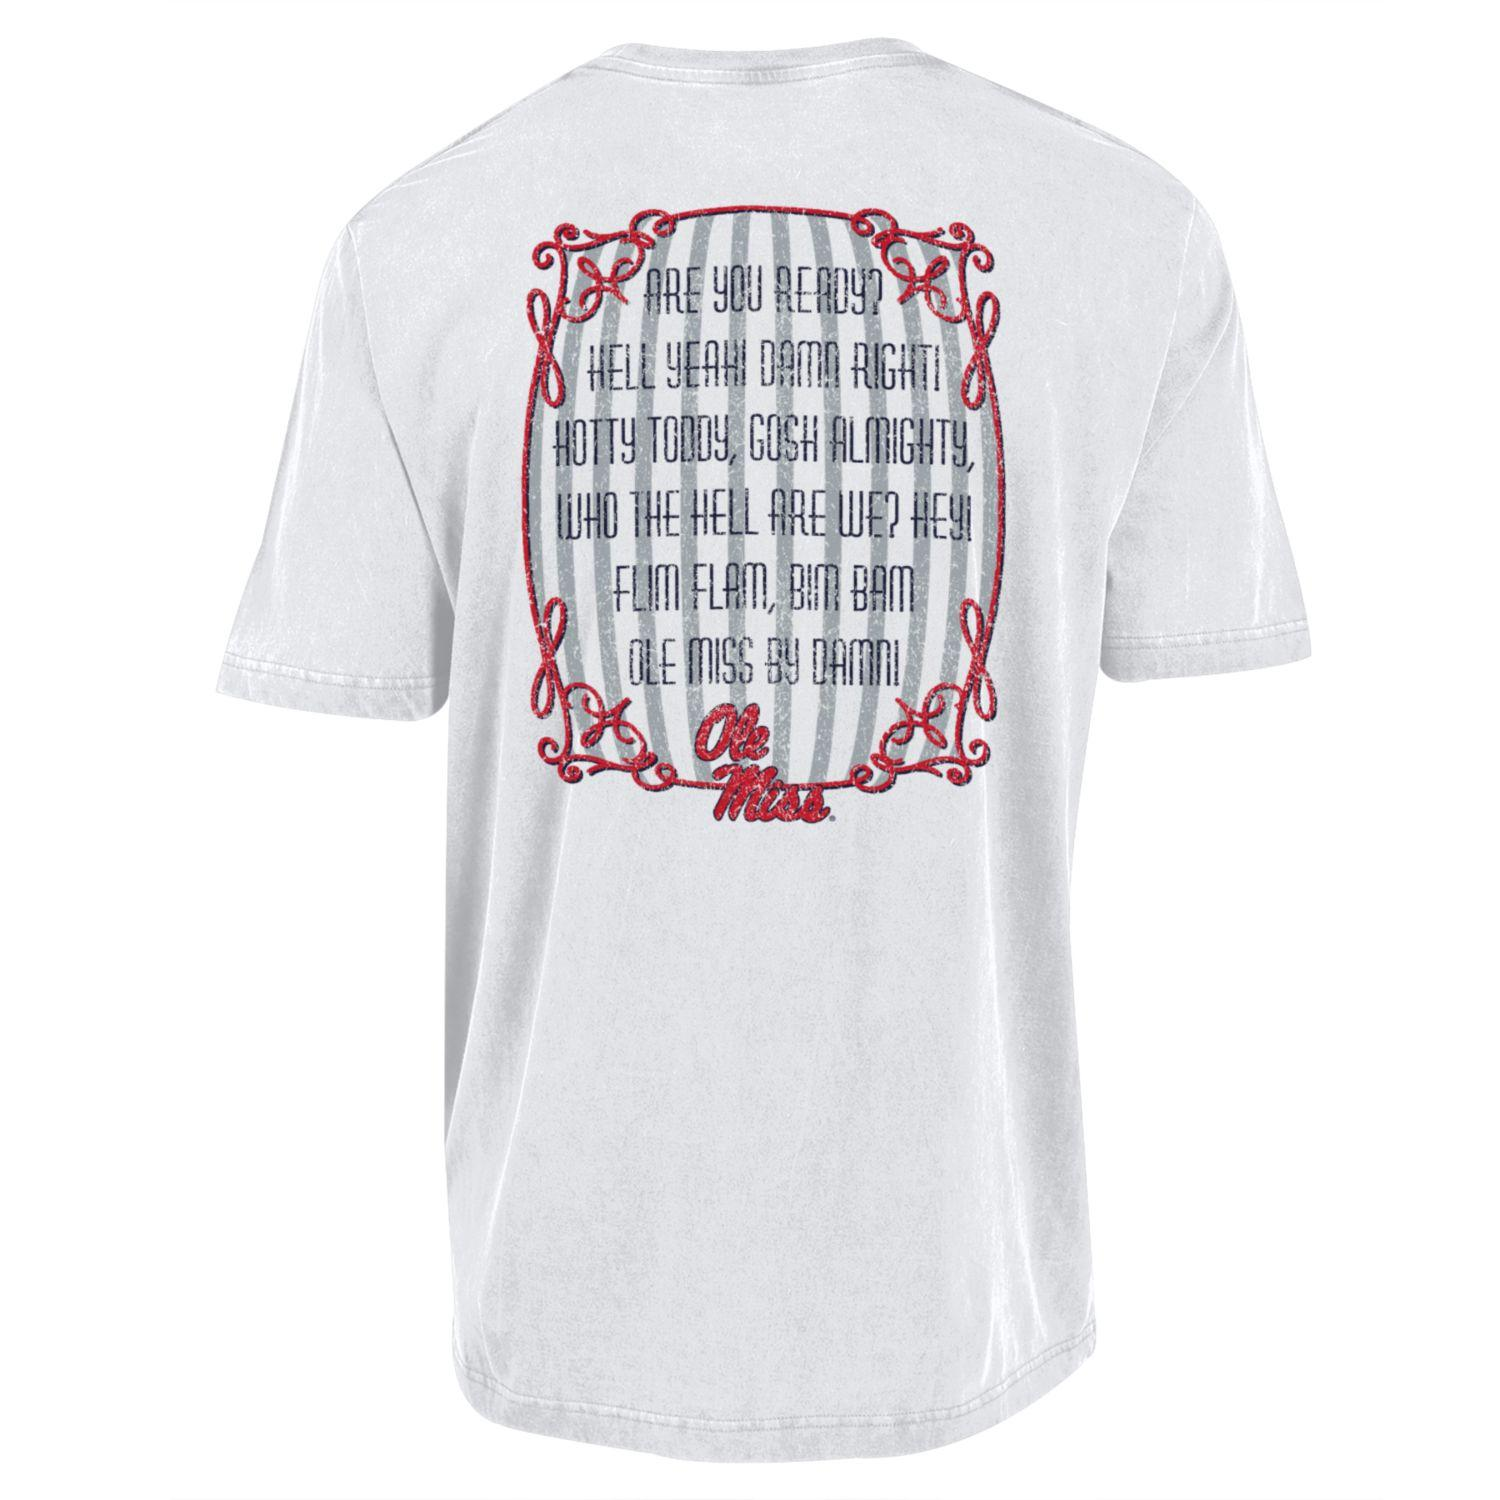 Gear Hotty Toddy Chant Outta Town Tee